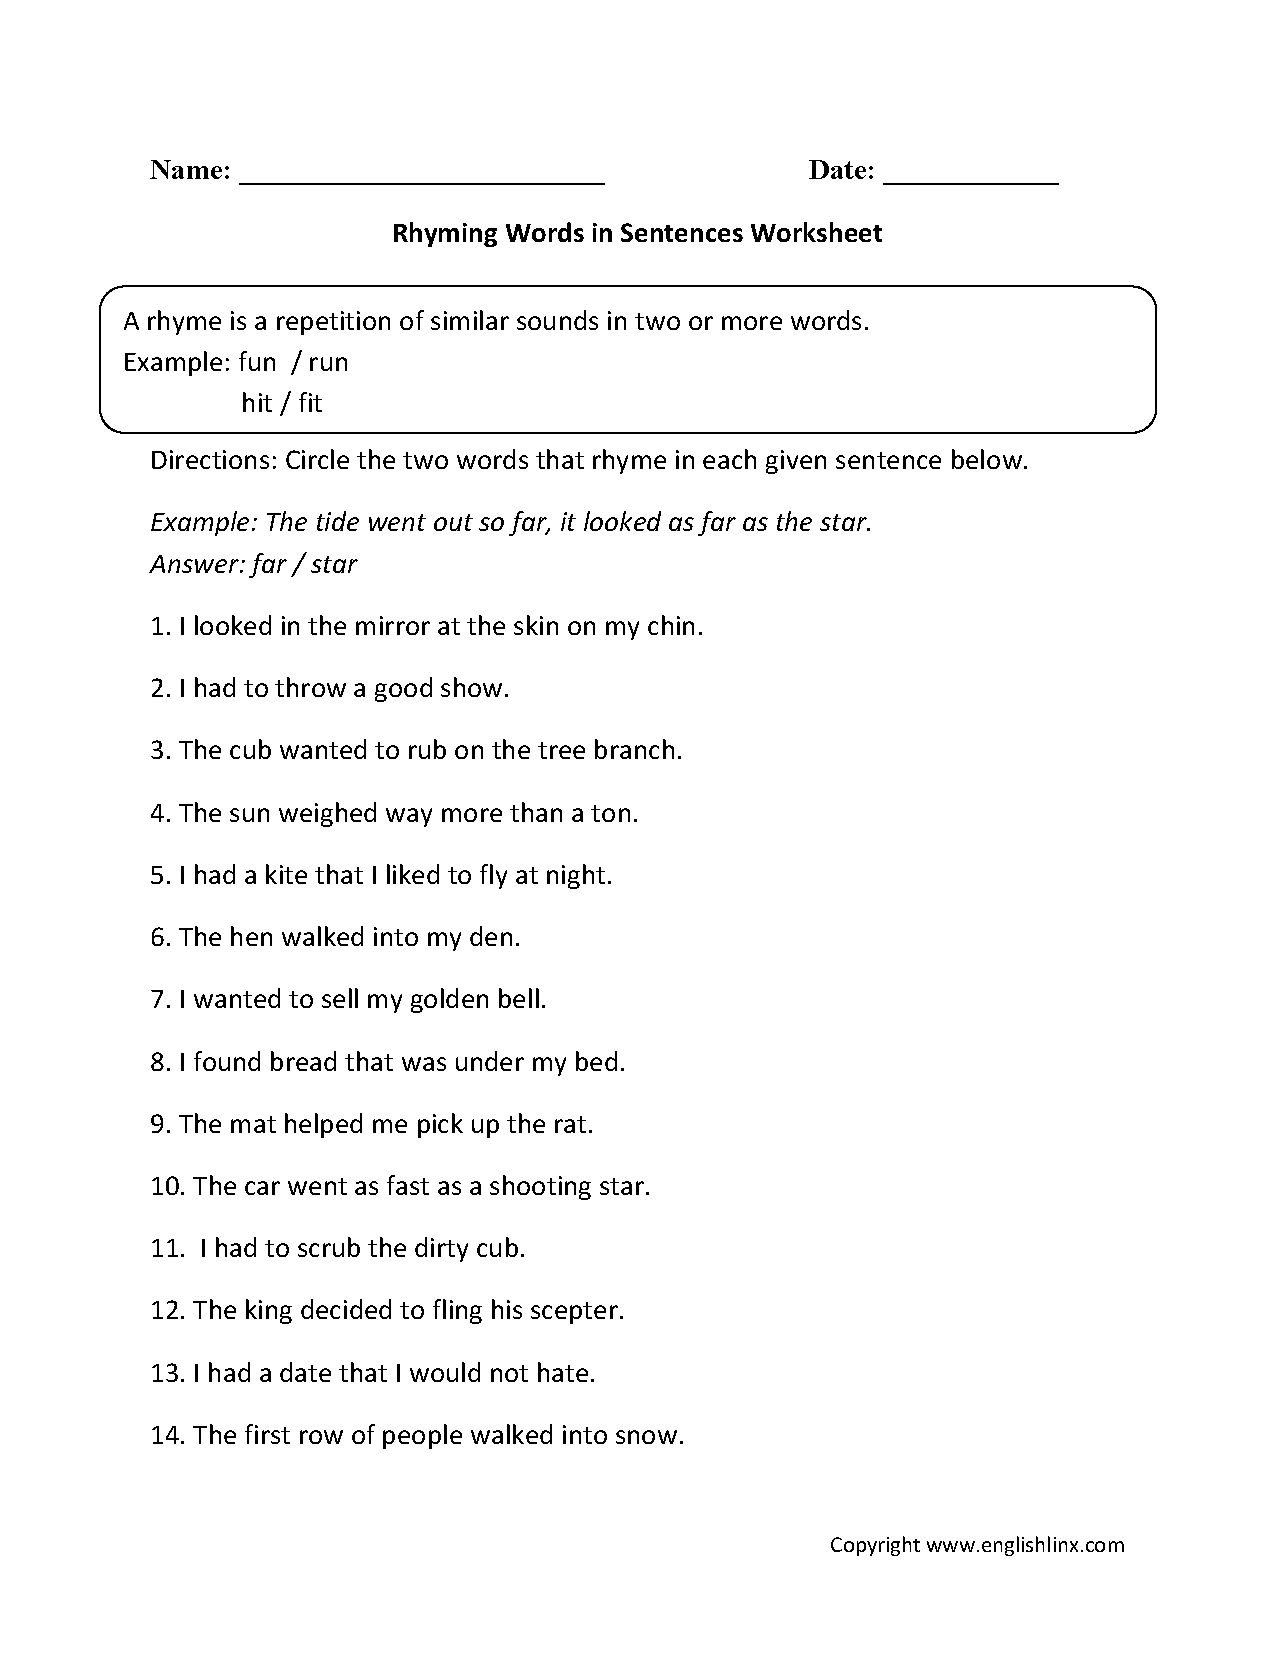 Printables Rhyming Sentence rhyming worksheets words in sentences worksheet worksheet